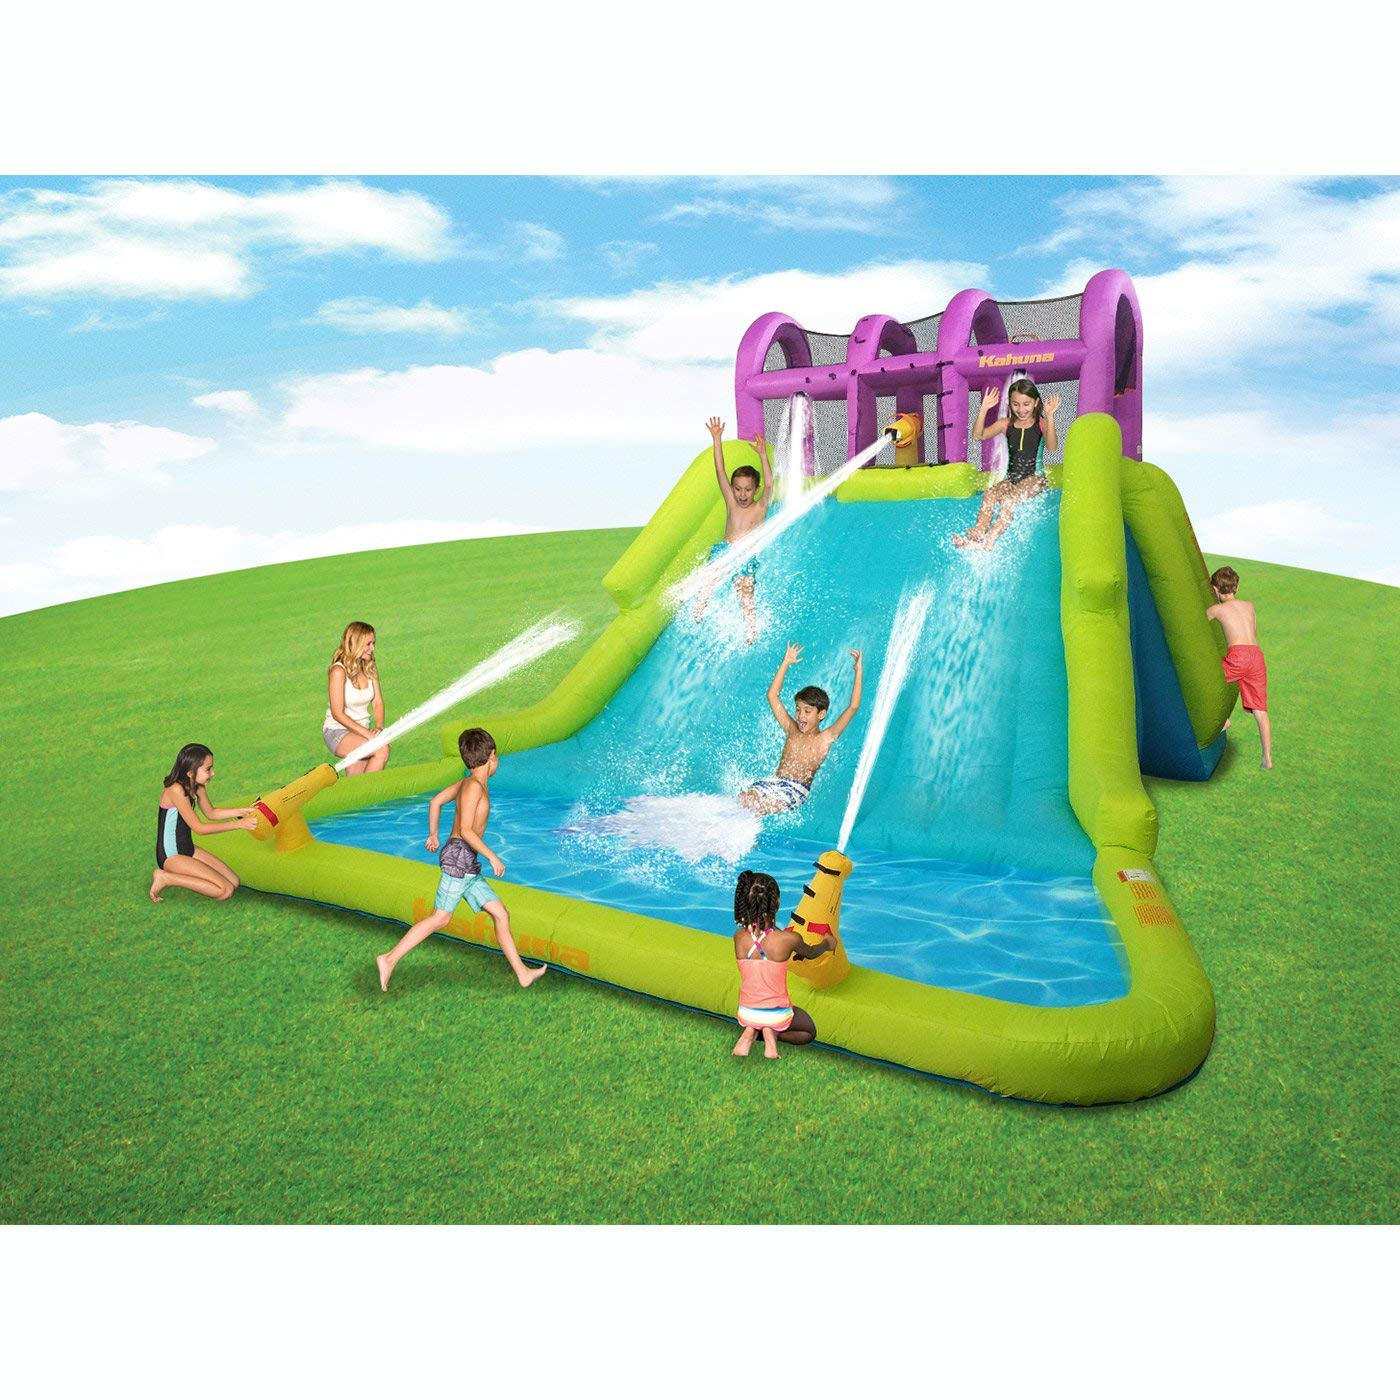 Kahuna Mega Blast Inflatable Backyard Kiddie Pool and Slide Water Park by Kahuna (Image #3)